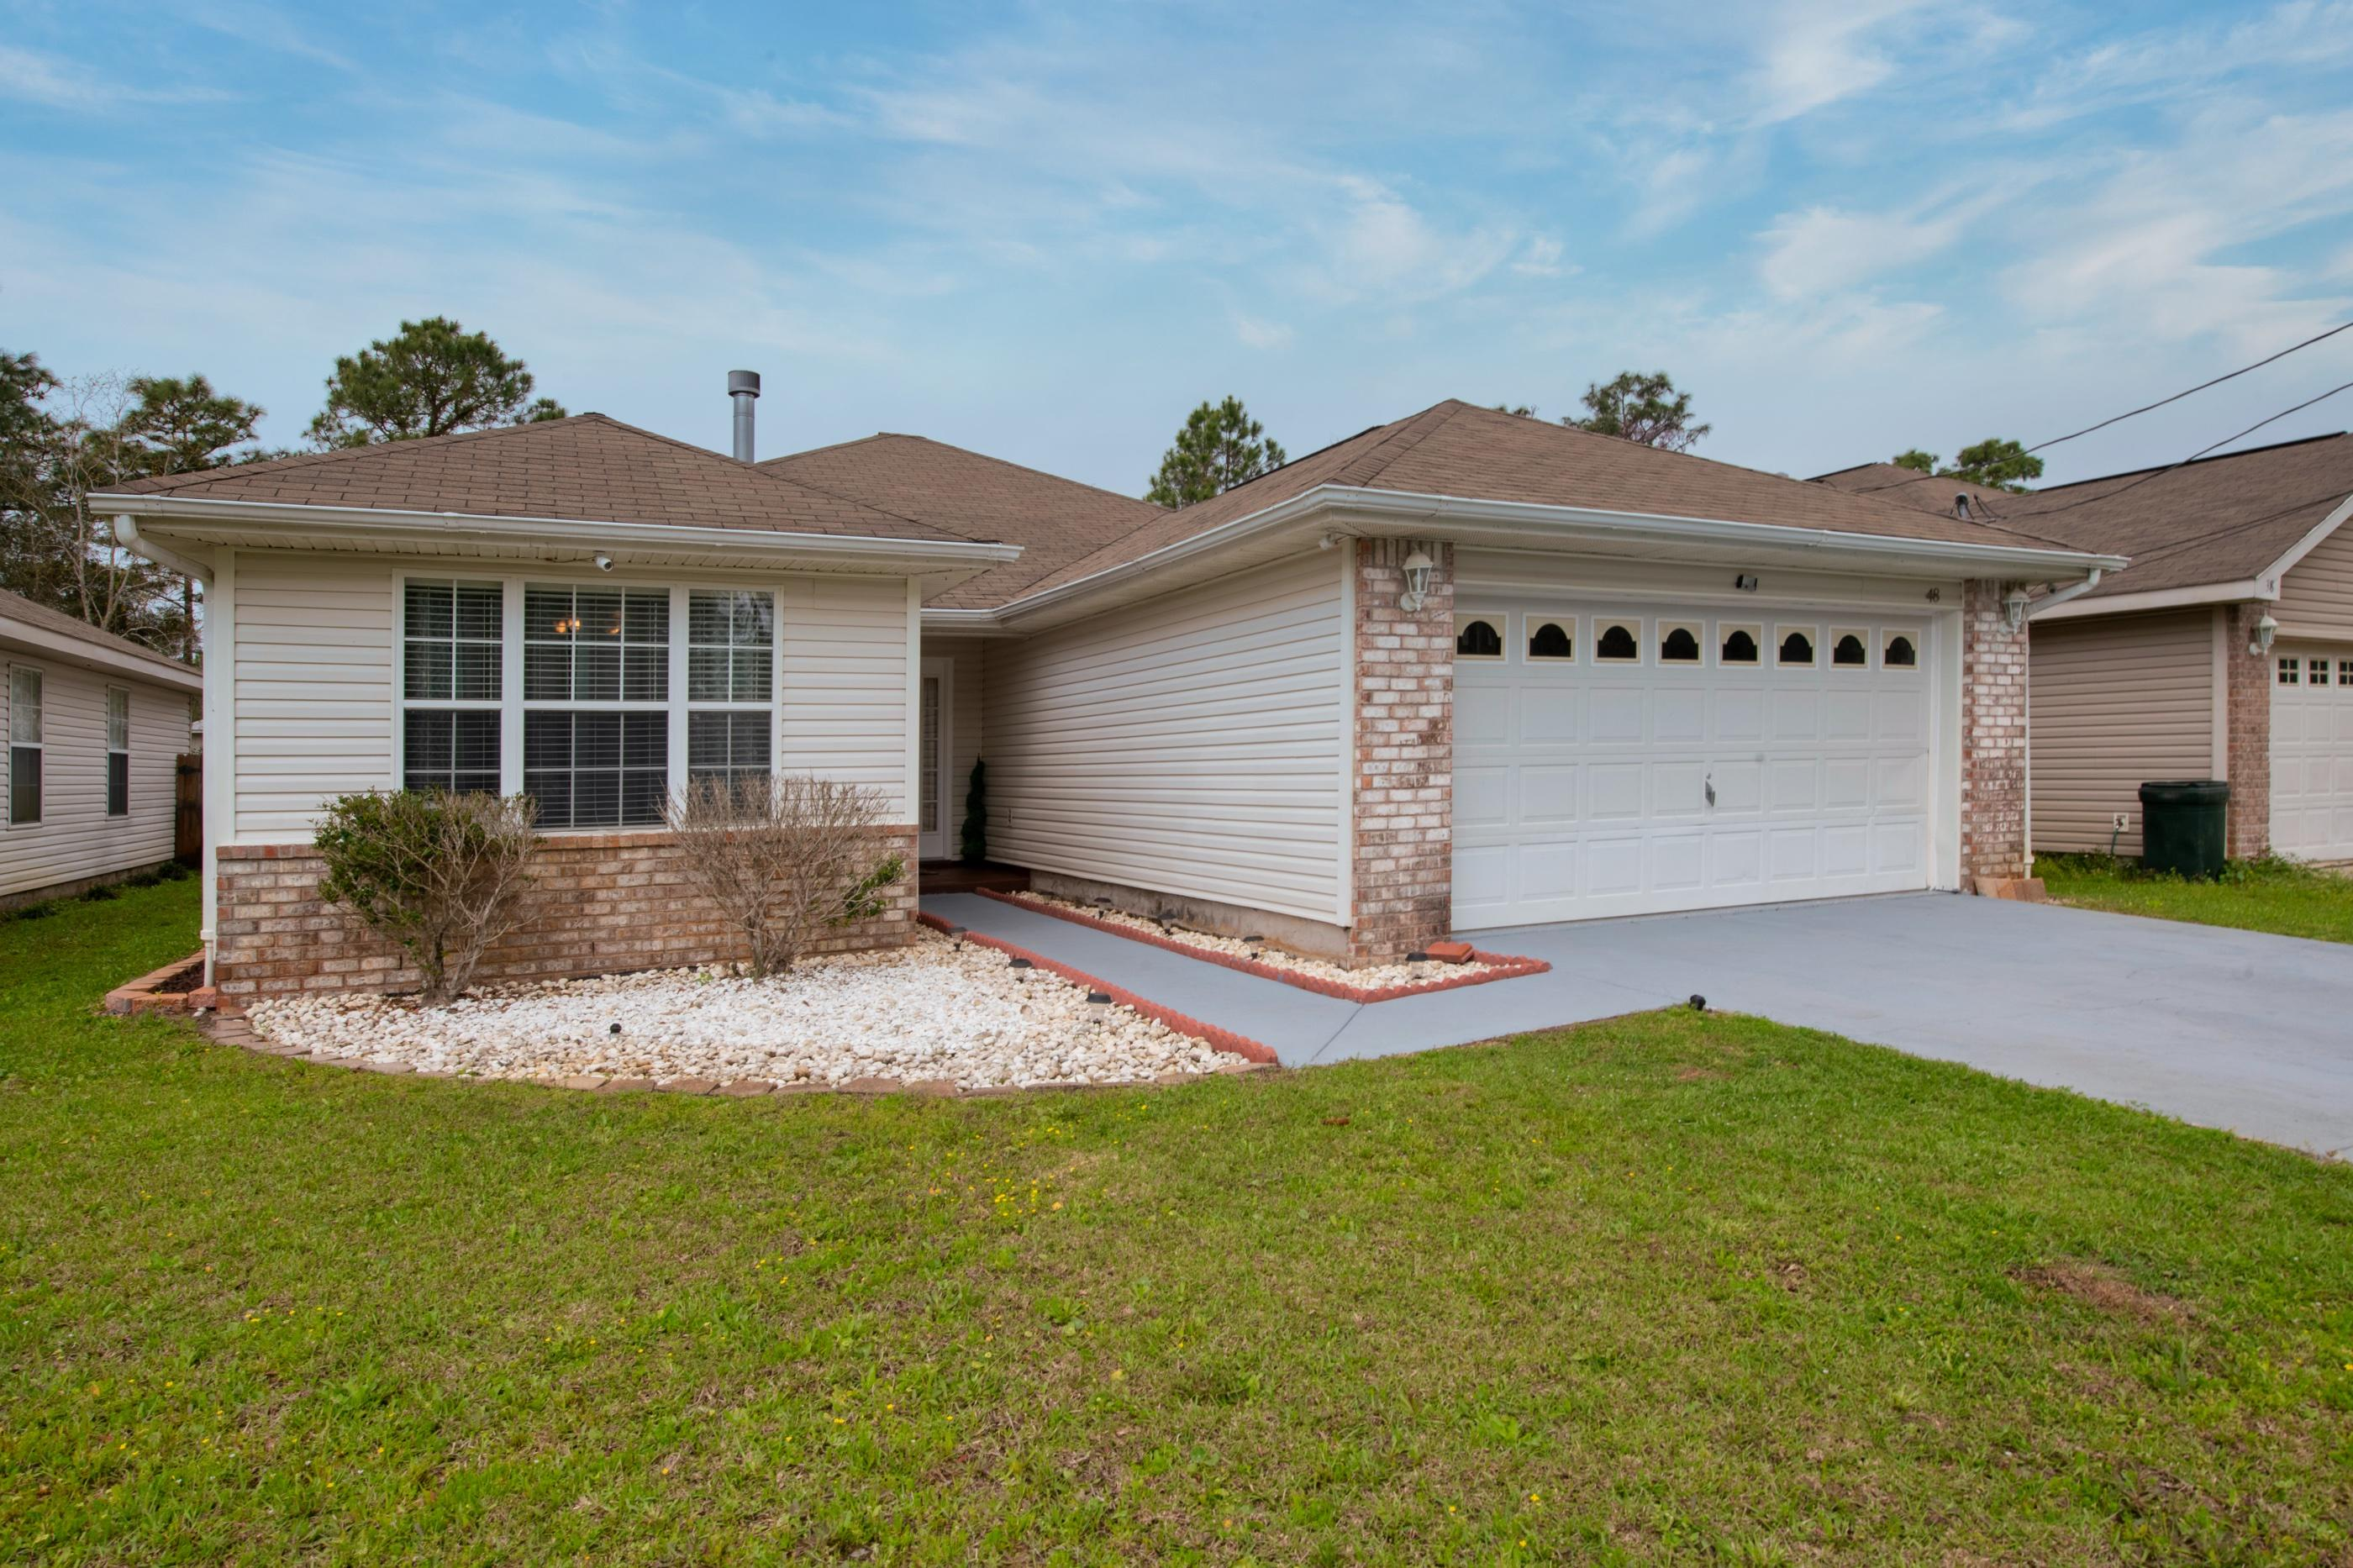 Photo of home for sale at 48 Howard, Niceville FL